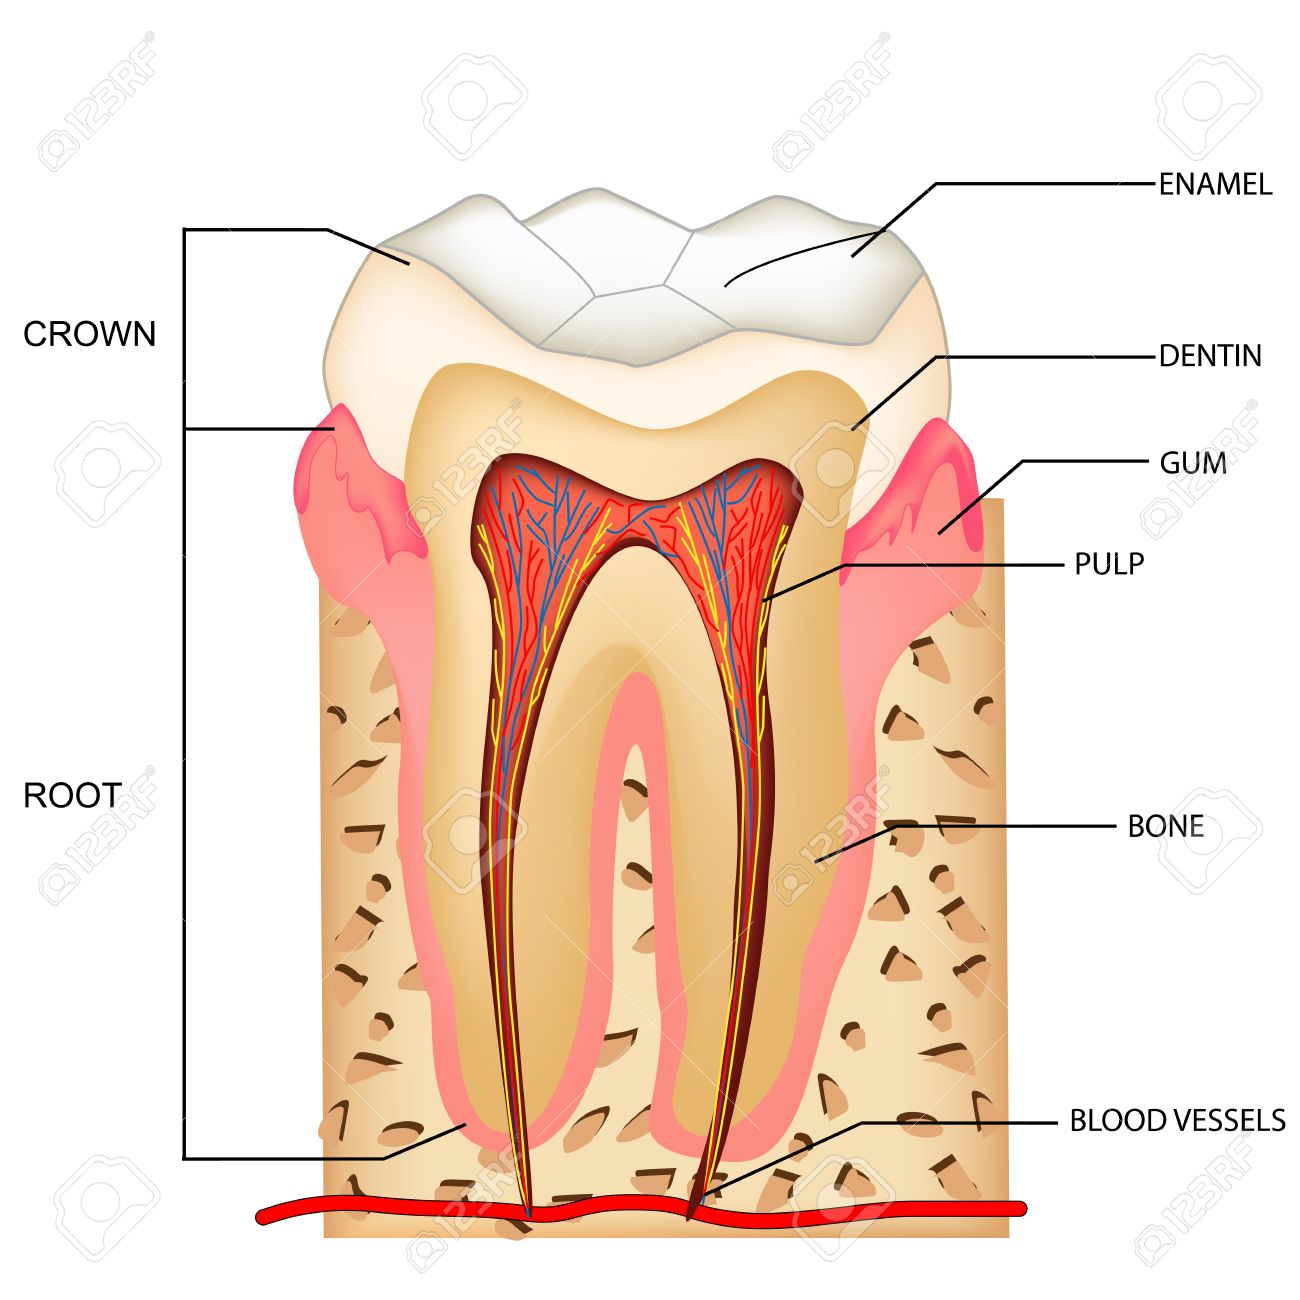 Illustration Of Anatomy Of Teeth With Labeling Royalty Free Cliparts